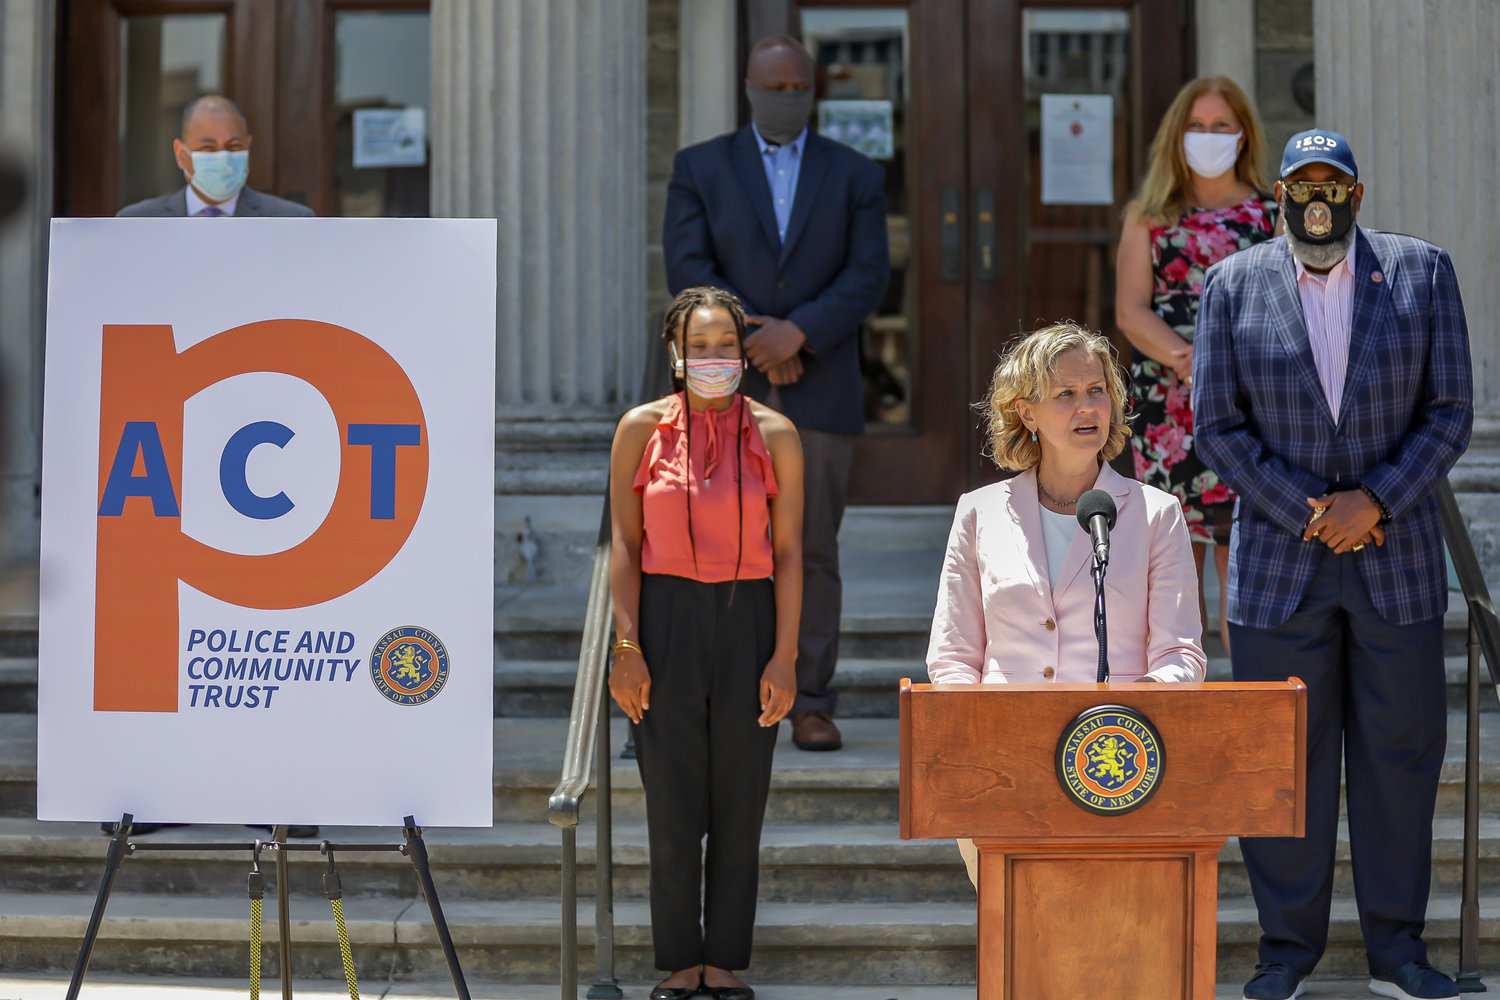 Nassau County Executive Laura Curran announced the initiative on June 17.